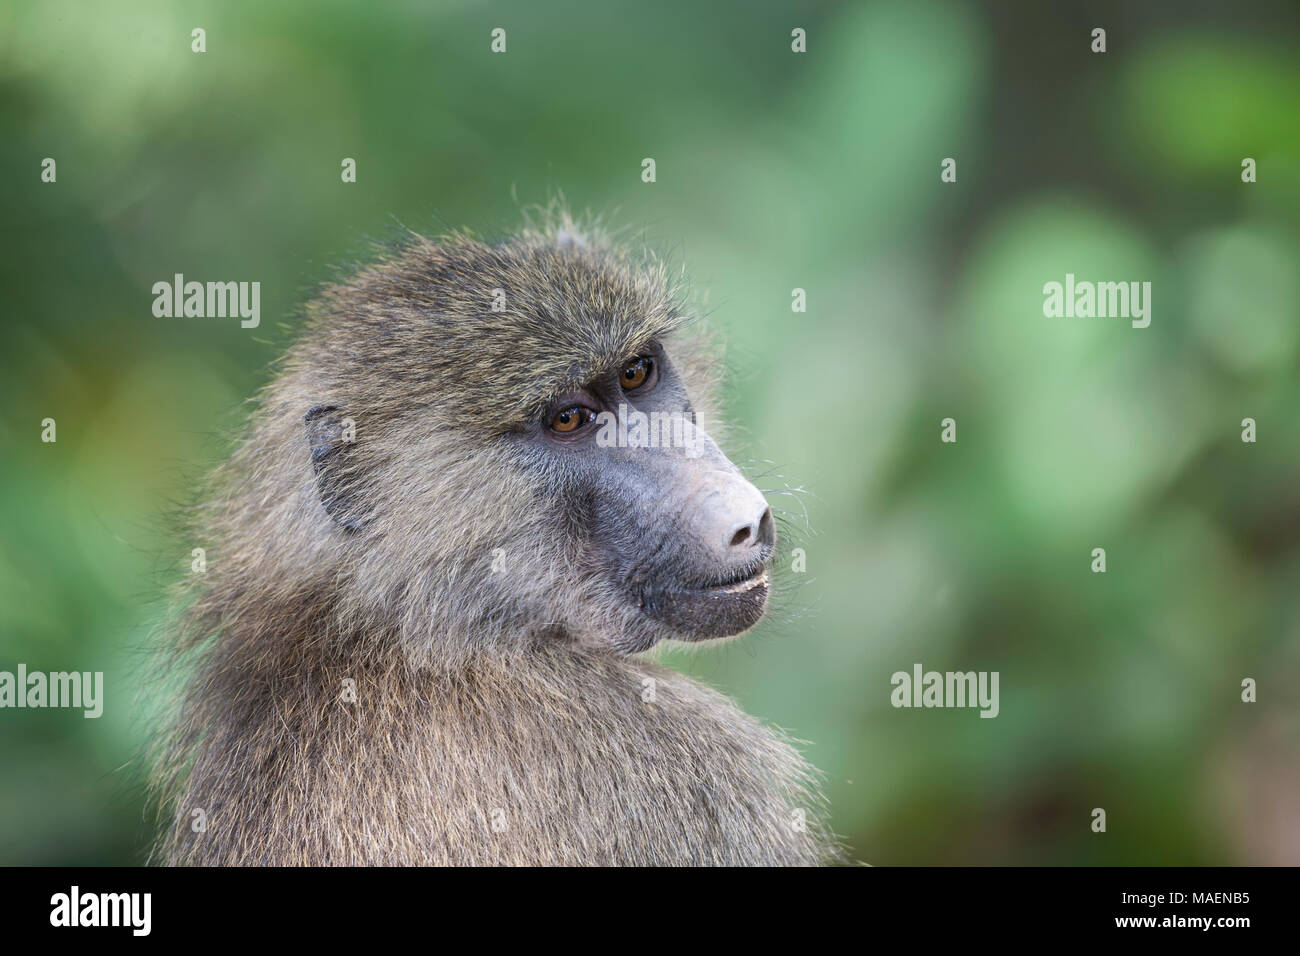 Close up portrait of Olive Baboon Papio cynocephalus anubis in undergrowth in Tanzania - Stock Image